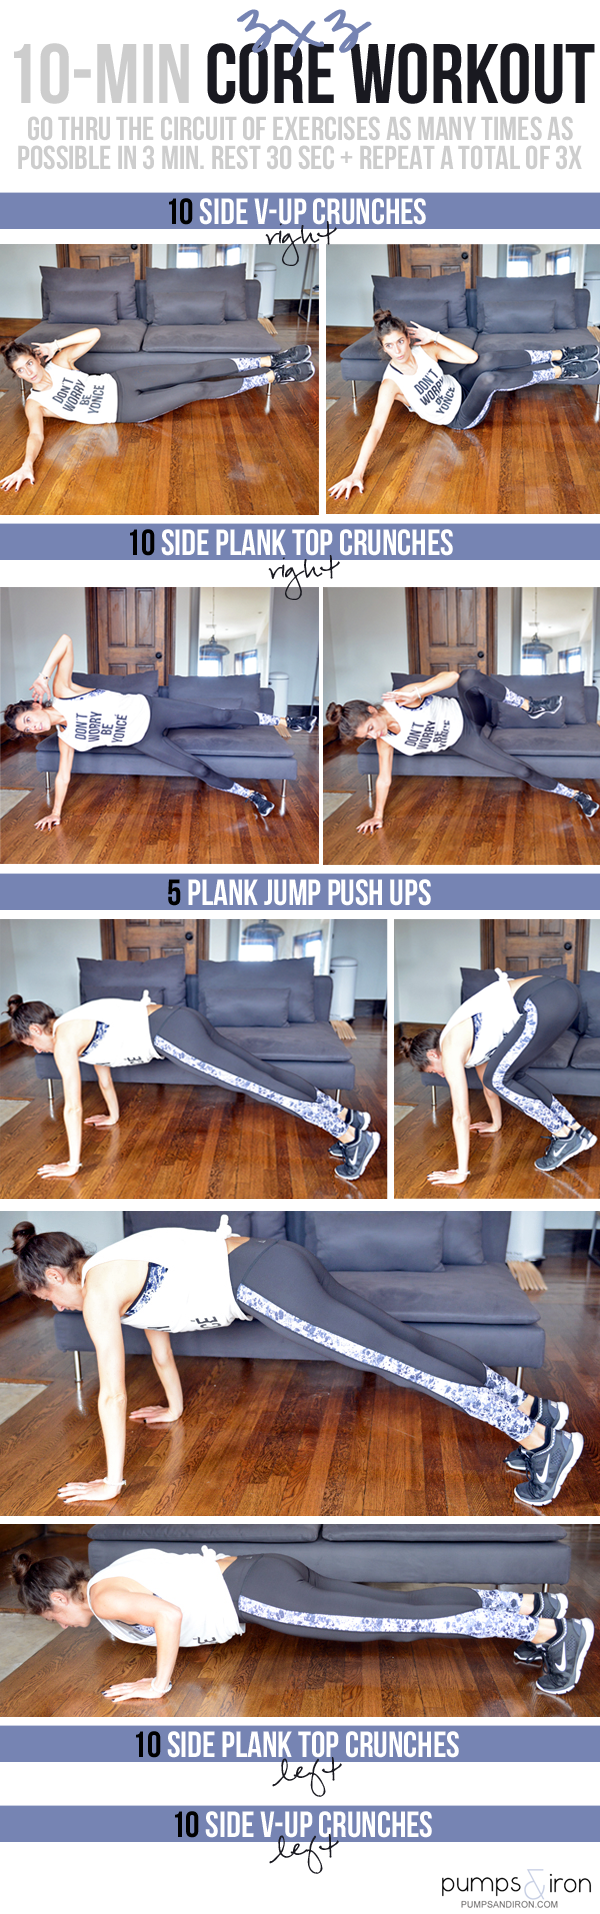 10-Minute Core Workout - 3x3 AMRAPS, no equipment needed